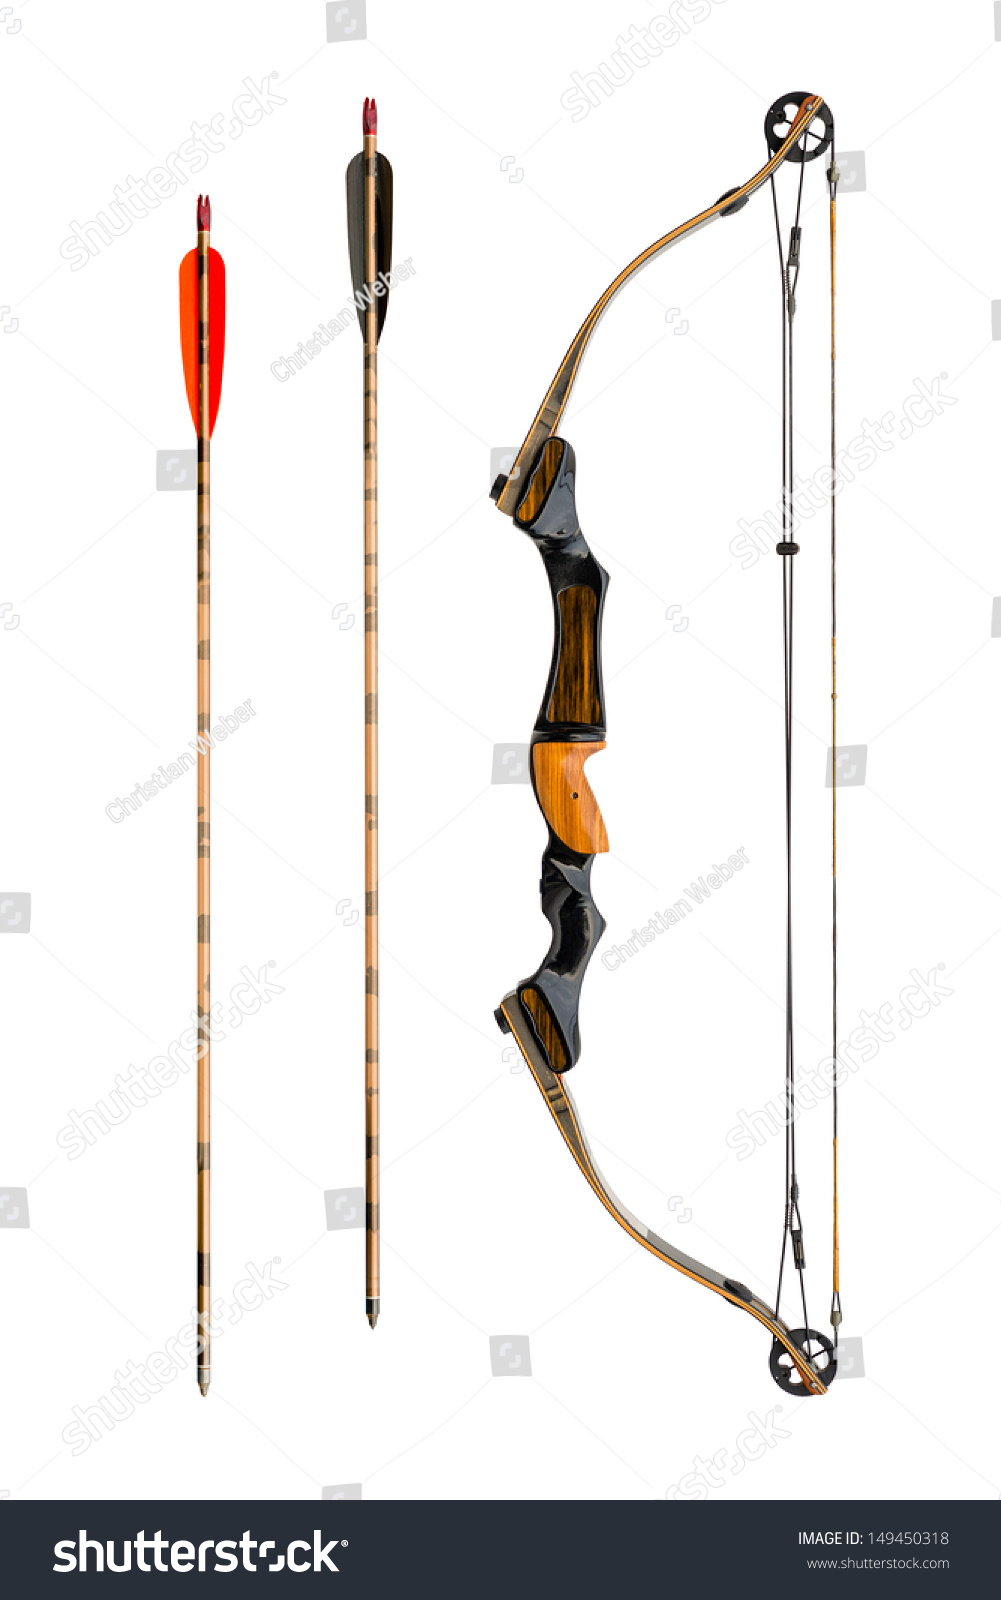 Compound Bow Arrows Isolated On White Stock Photo (Royalty Free ...